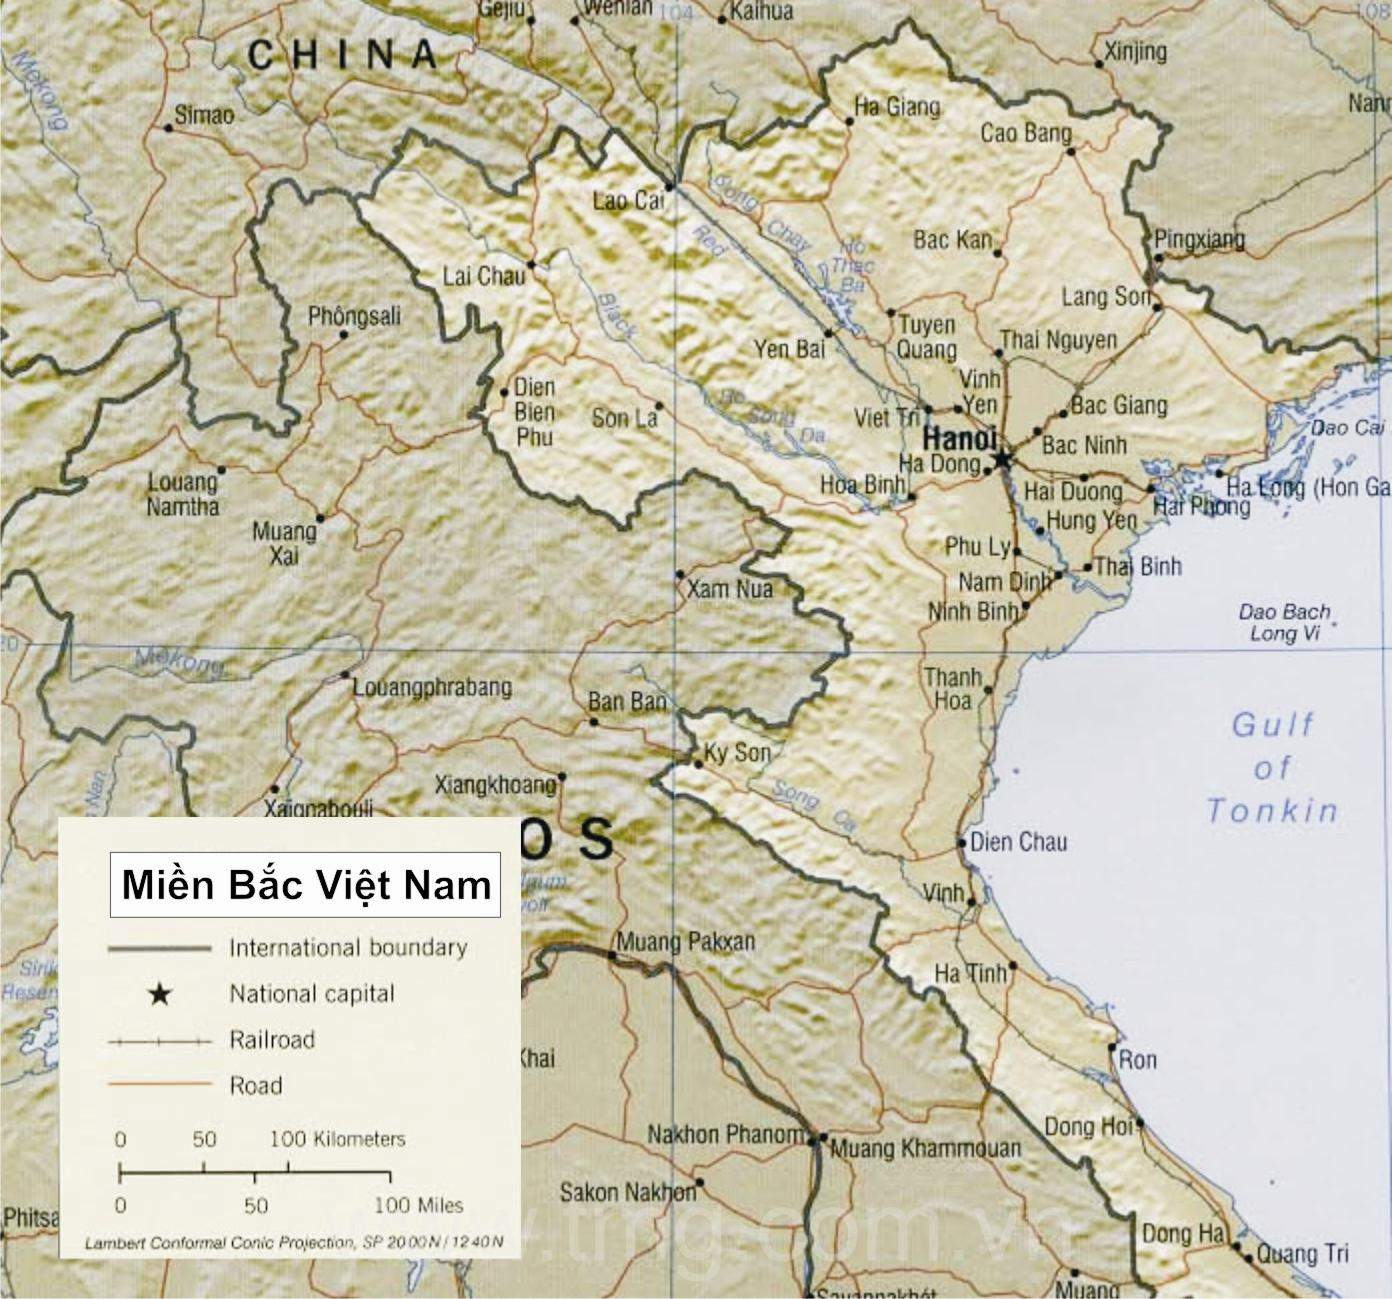 Mien Bac Viet Nam large map